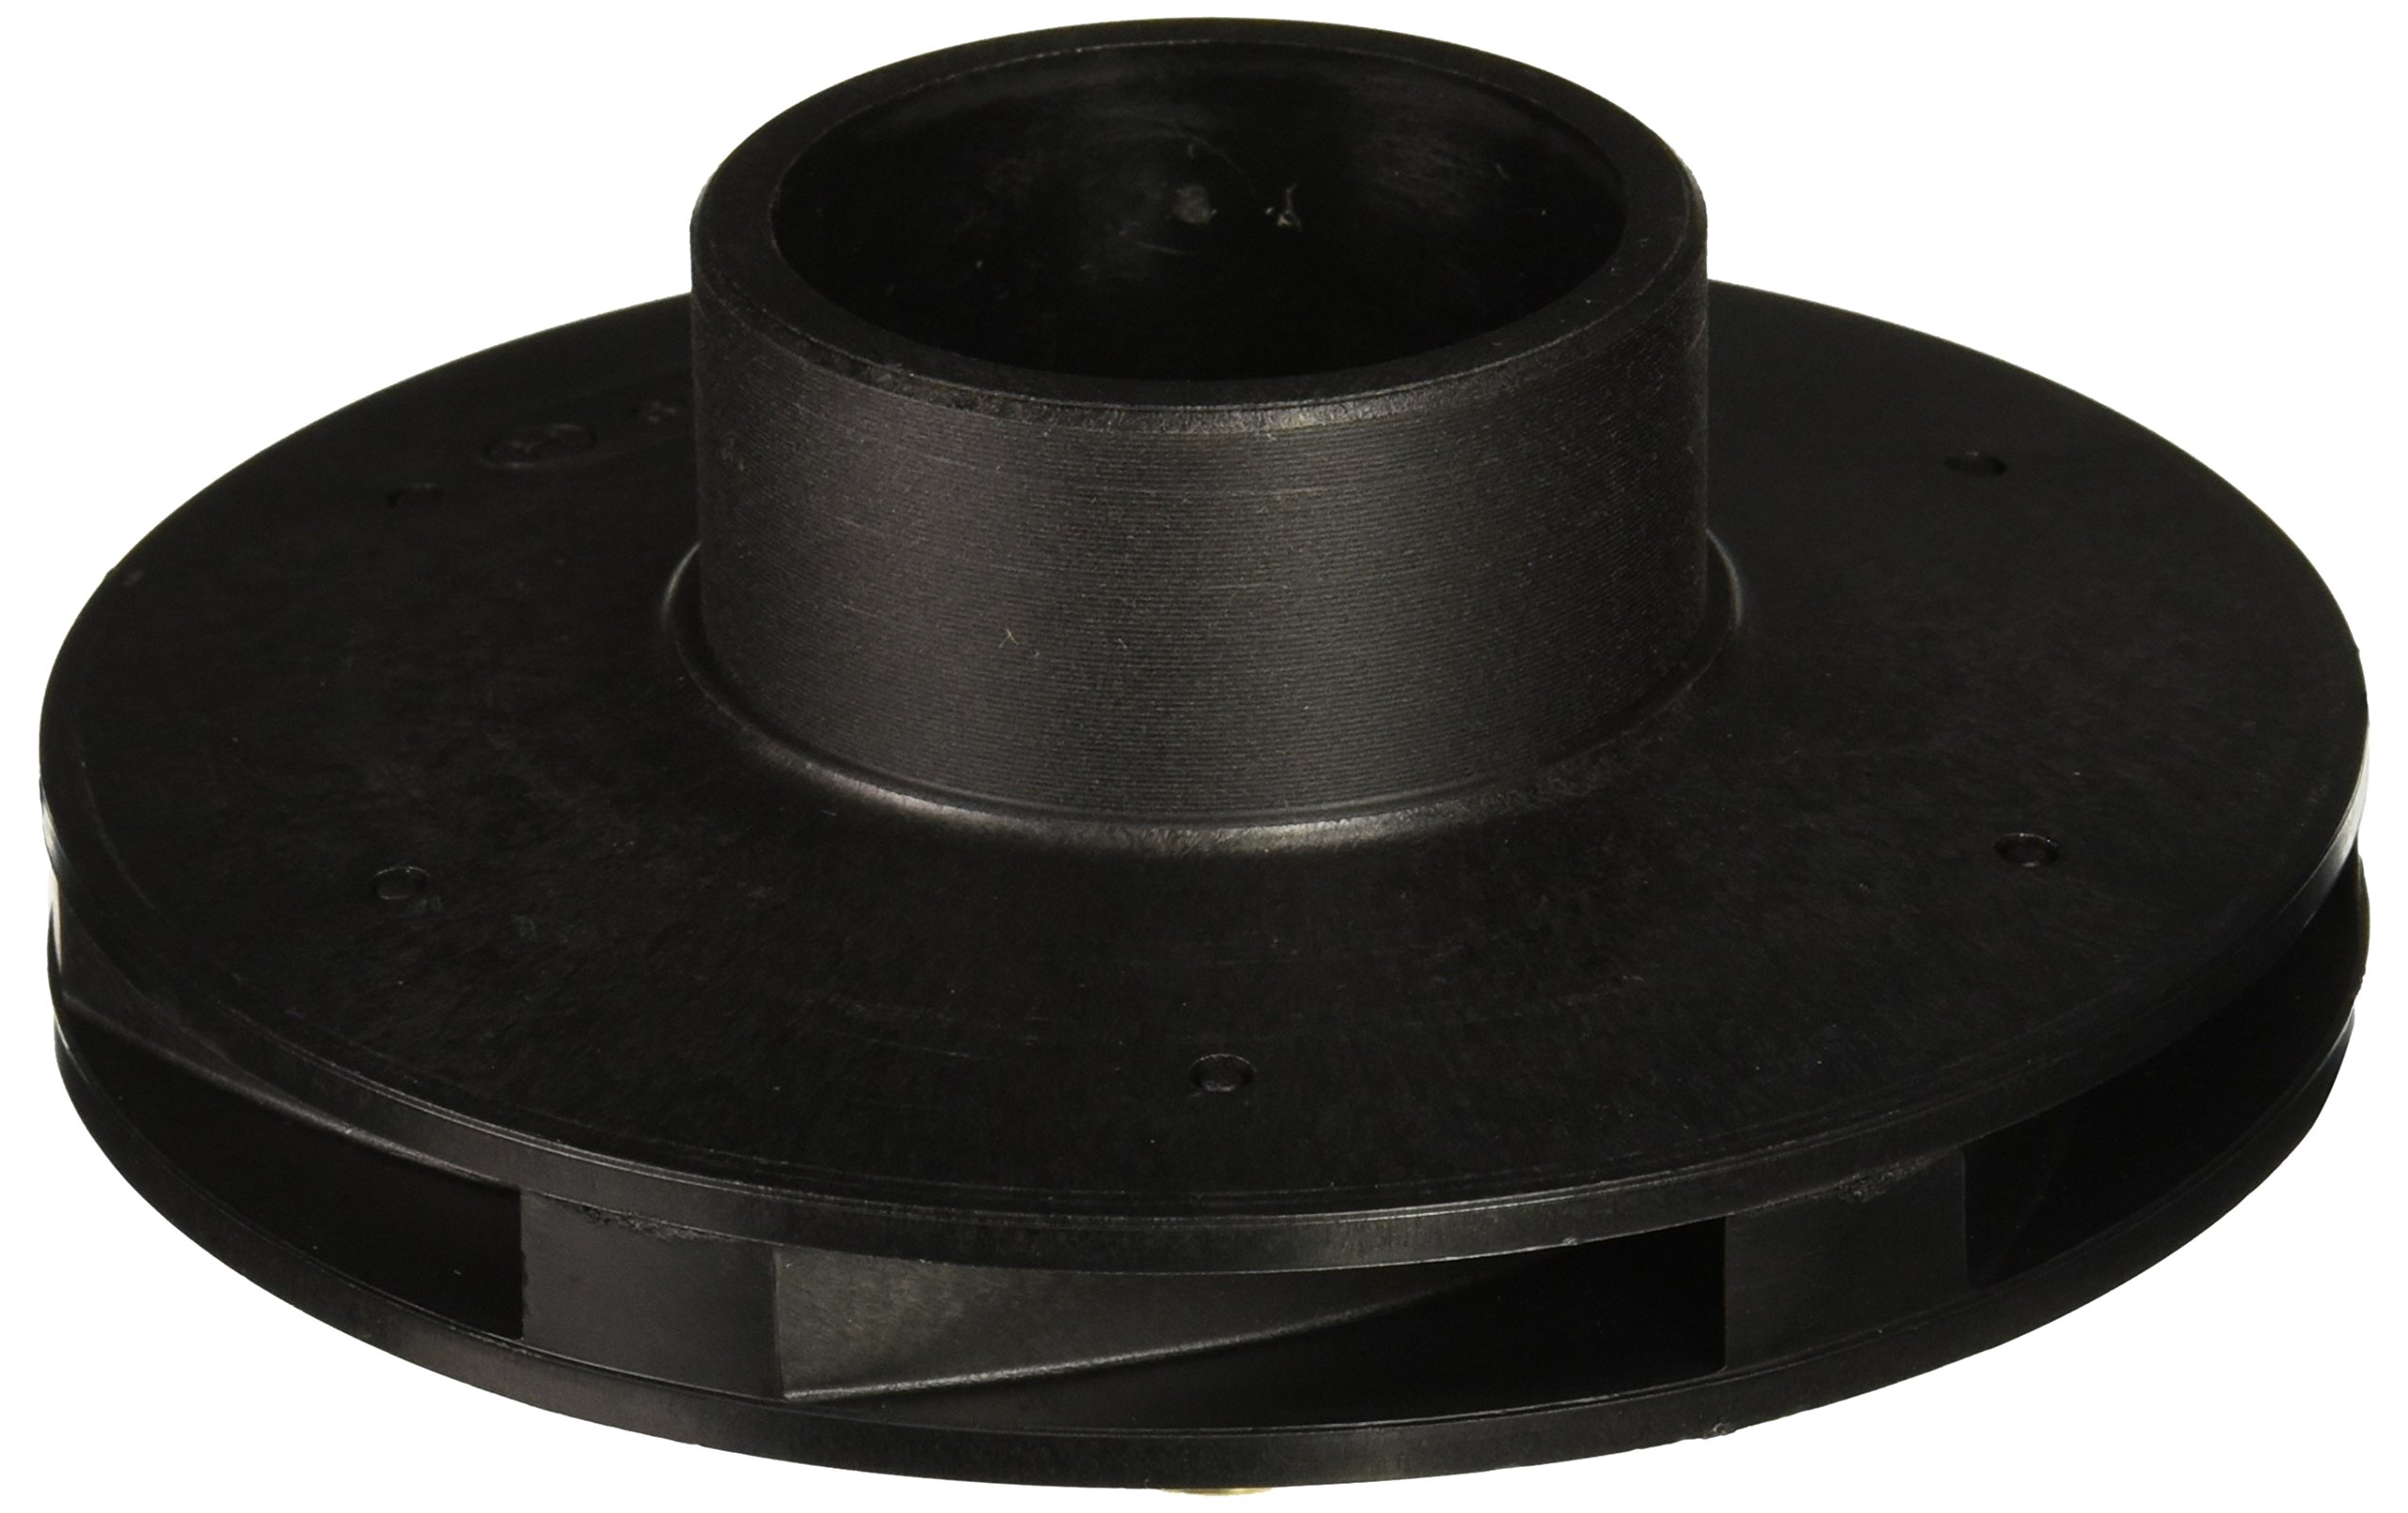 Hayward SPX3026C 3-Horsepower Impeller Replacement for Hayward Super Ii Pump